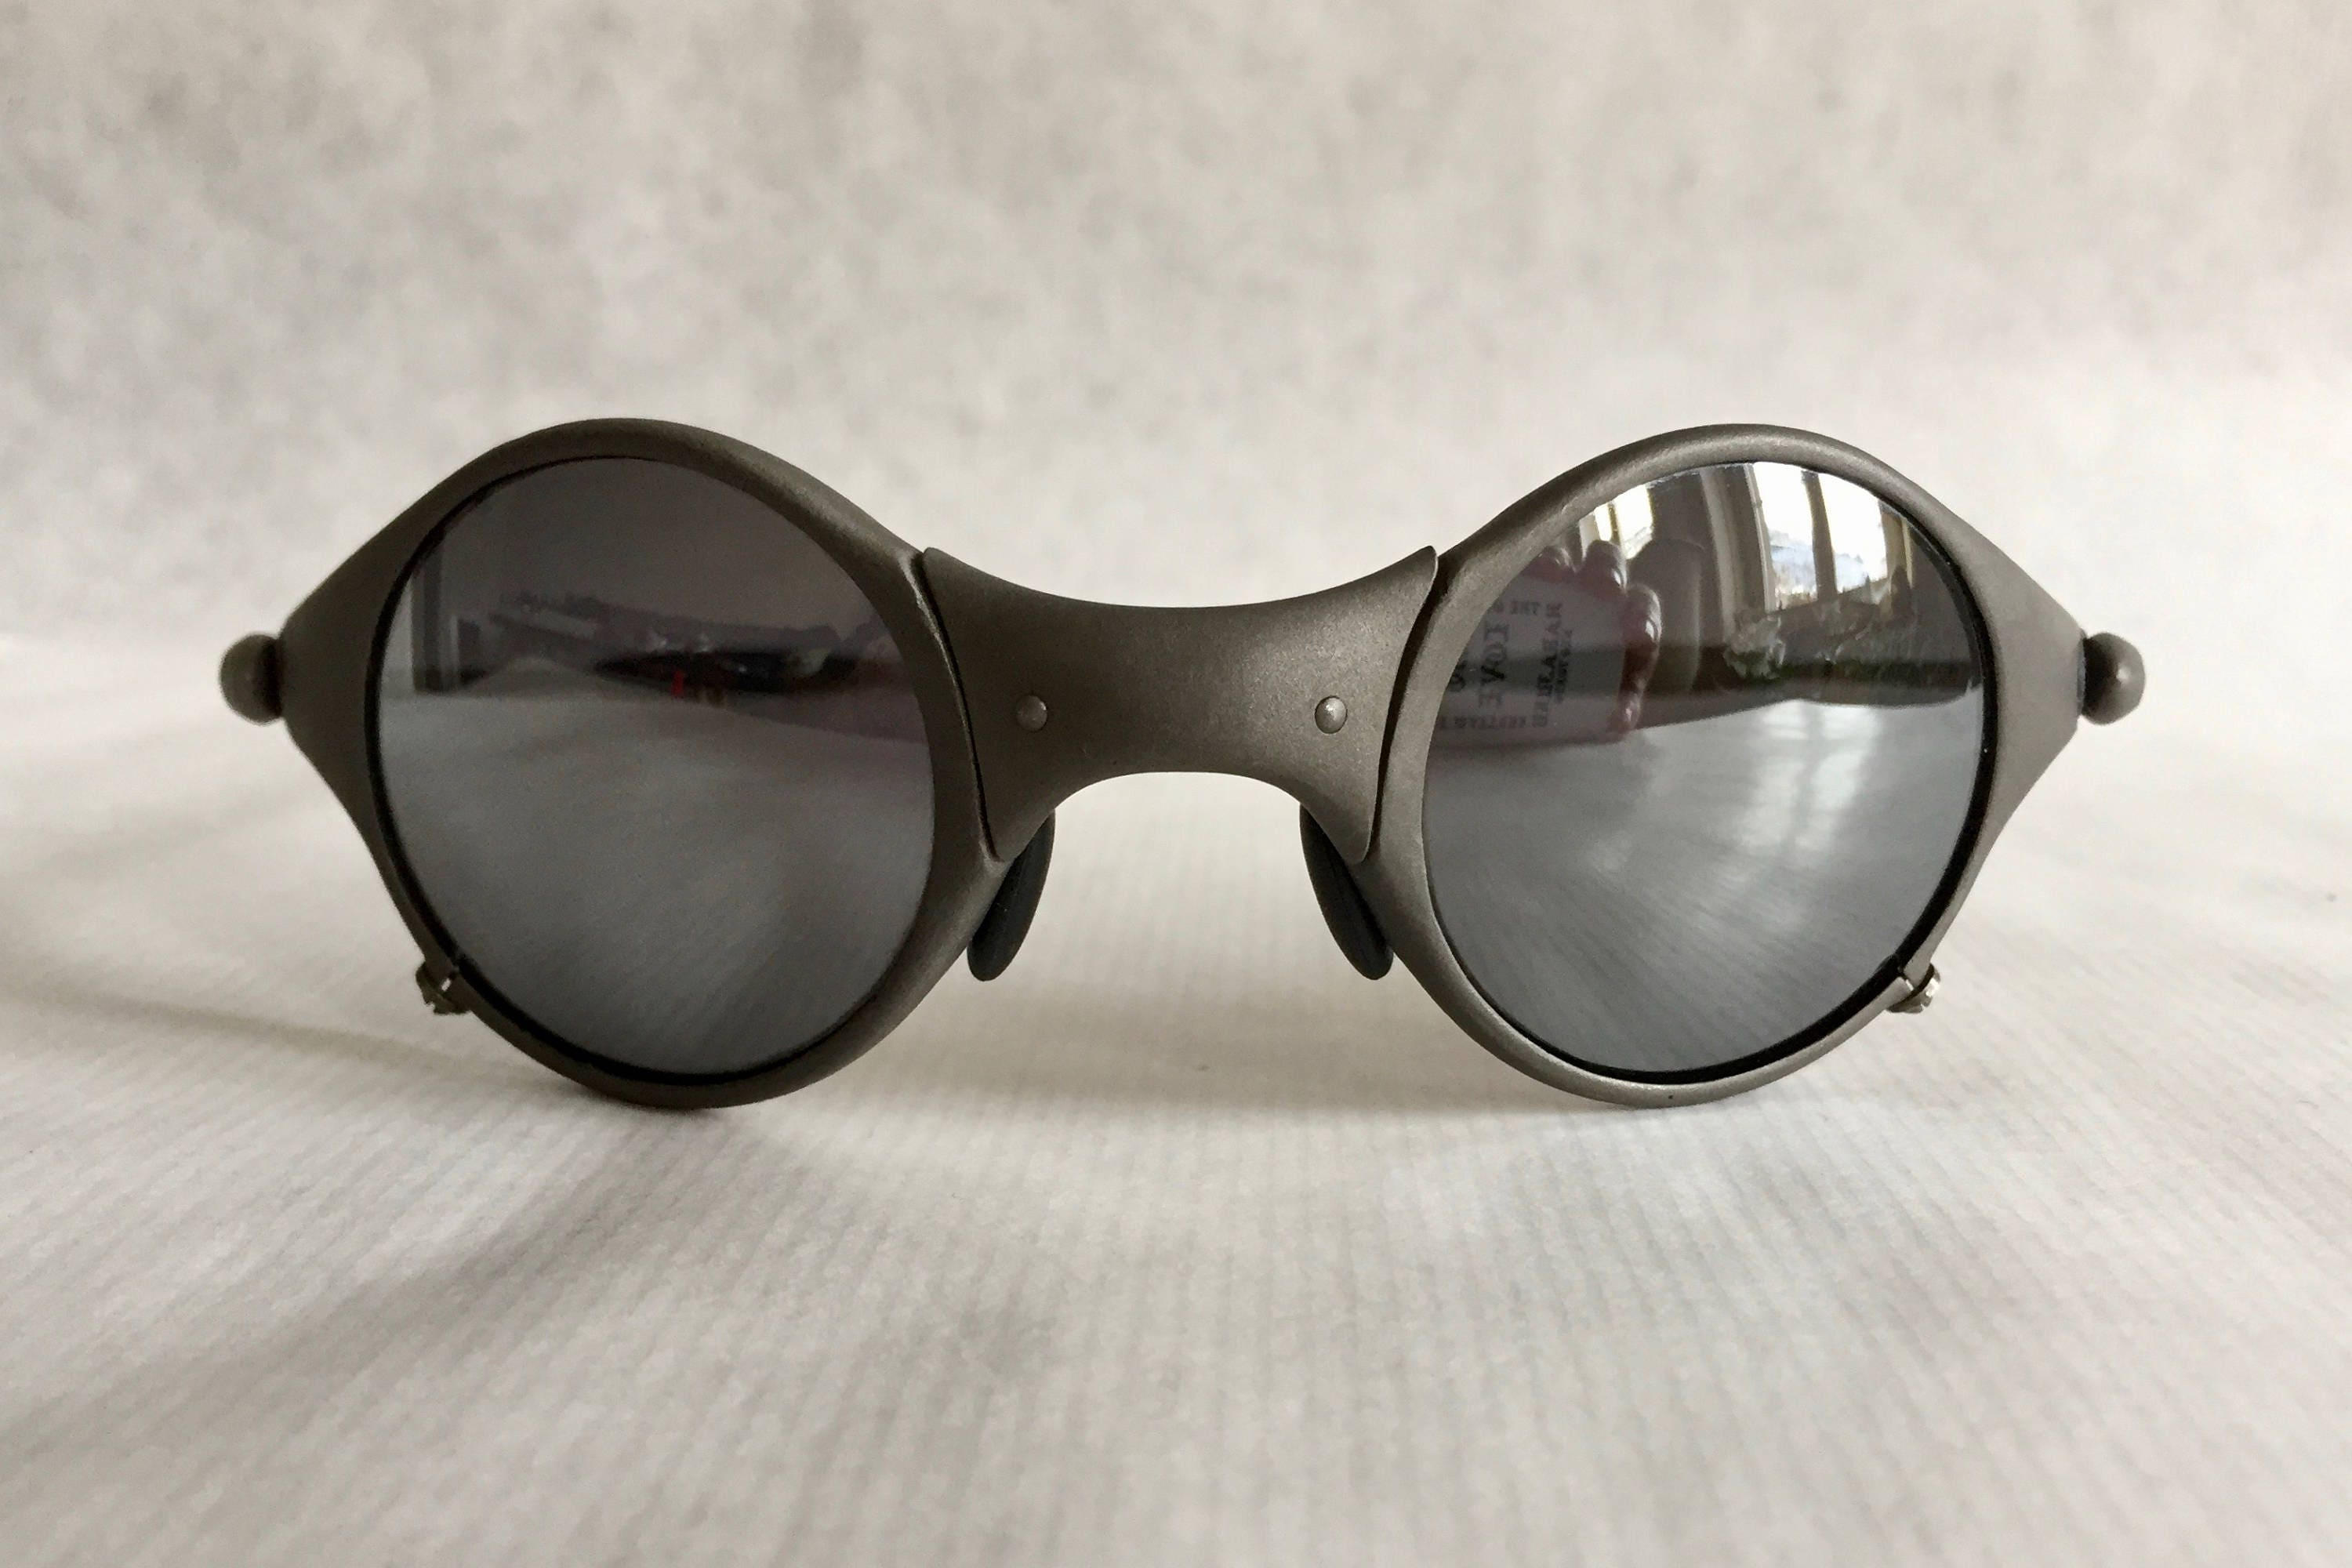 1596e699423f2 Oakley X Metal Mars Vintage Sunglasses New Unworn Deadstock including Case    Coin. gallery photo gallery photo gallery photo gallery photo ...